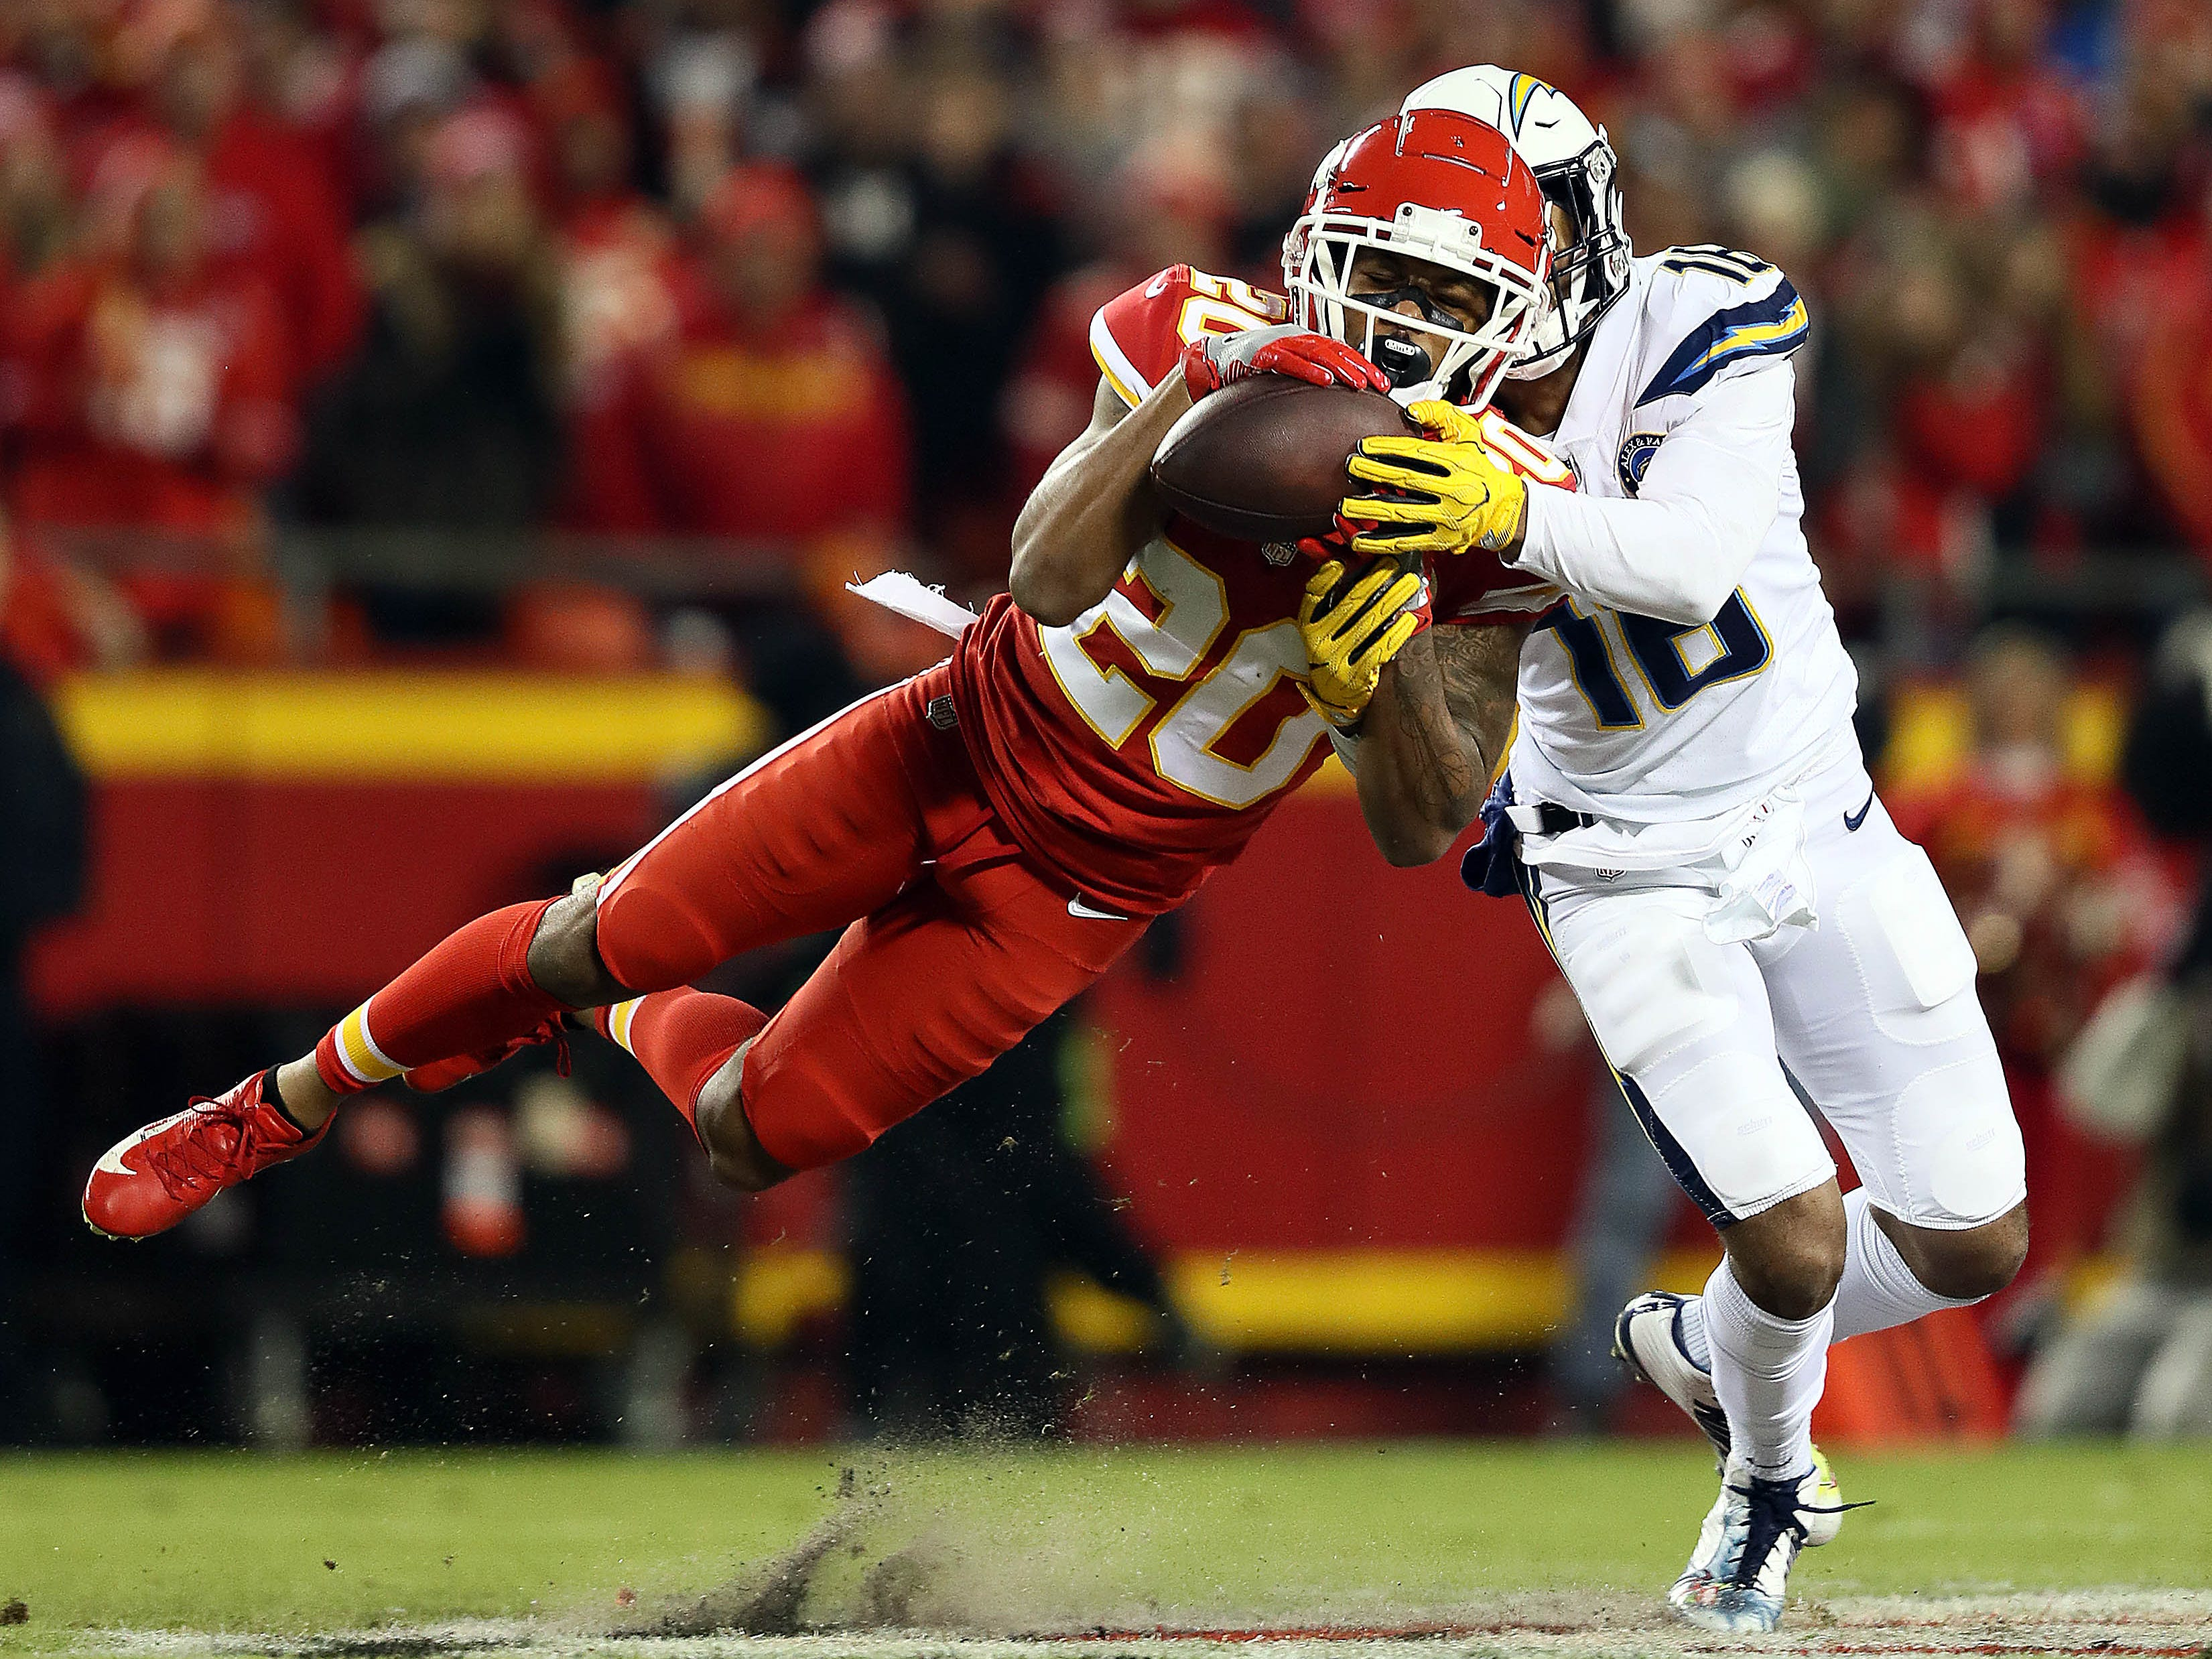 Steven Nelson, CB, Kansas City: A steadily improving young cornerback, Nelson started intercepting passes in 2018, as opposed to just breaking them up. He finished the year with four picks and 15 pass defenses for the Chiefs. He primarily played on the outside in 2018, but has plenty of experience working the slot, giving him added value.